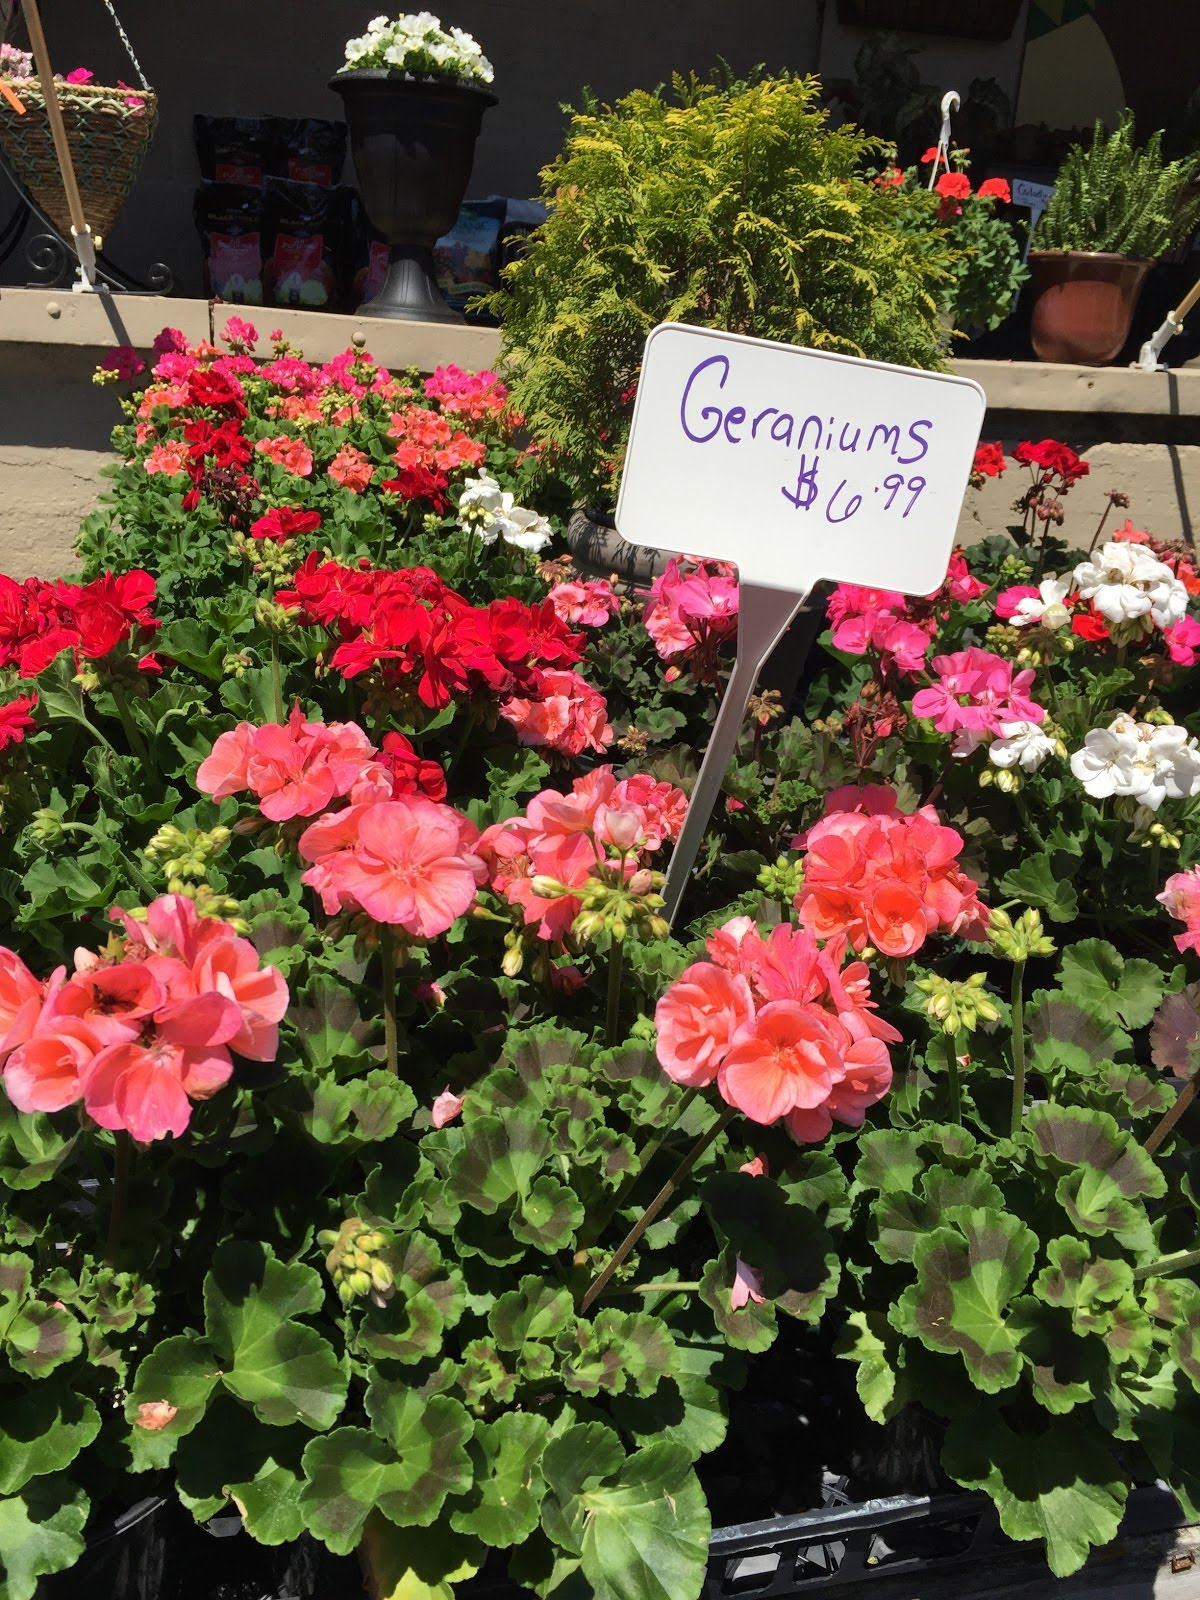 Geraniums-various colors.